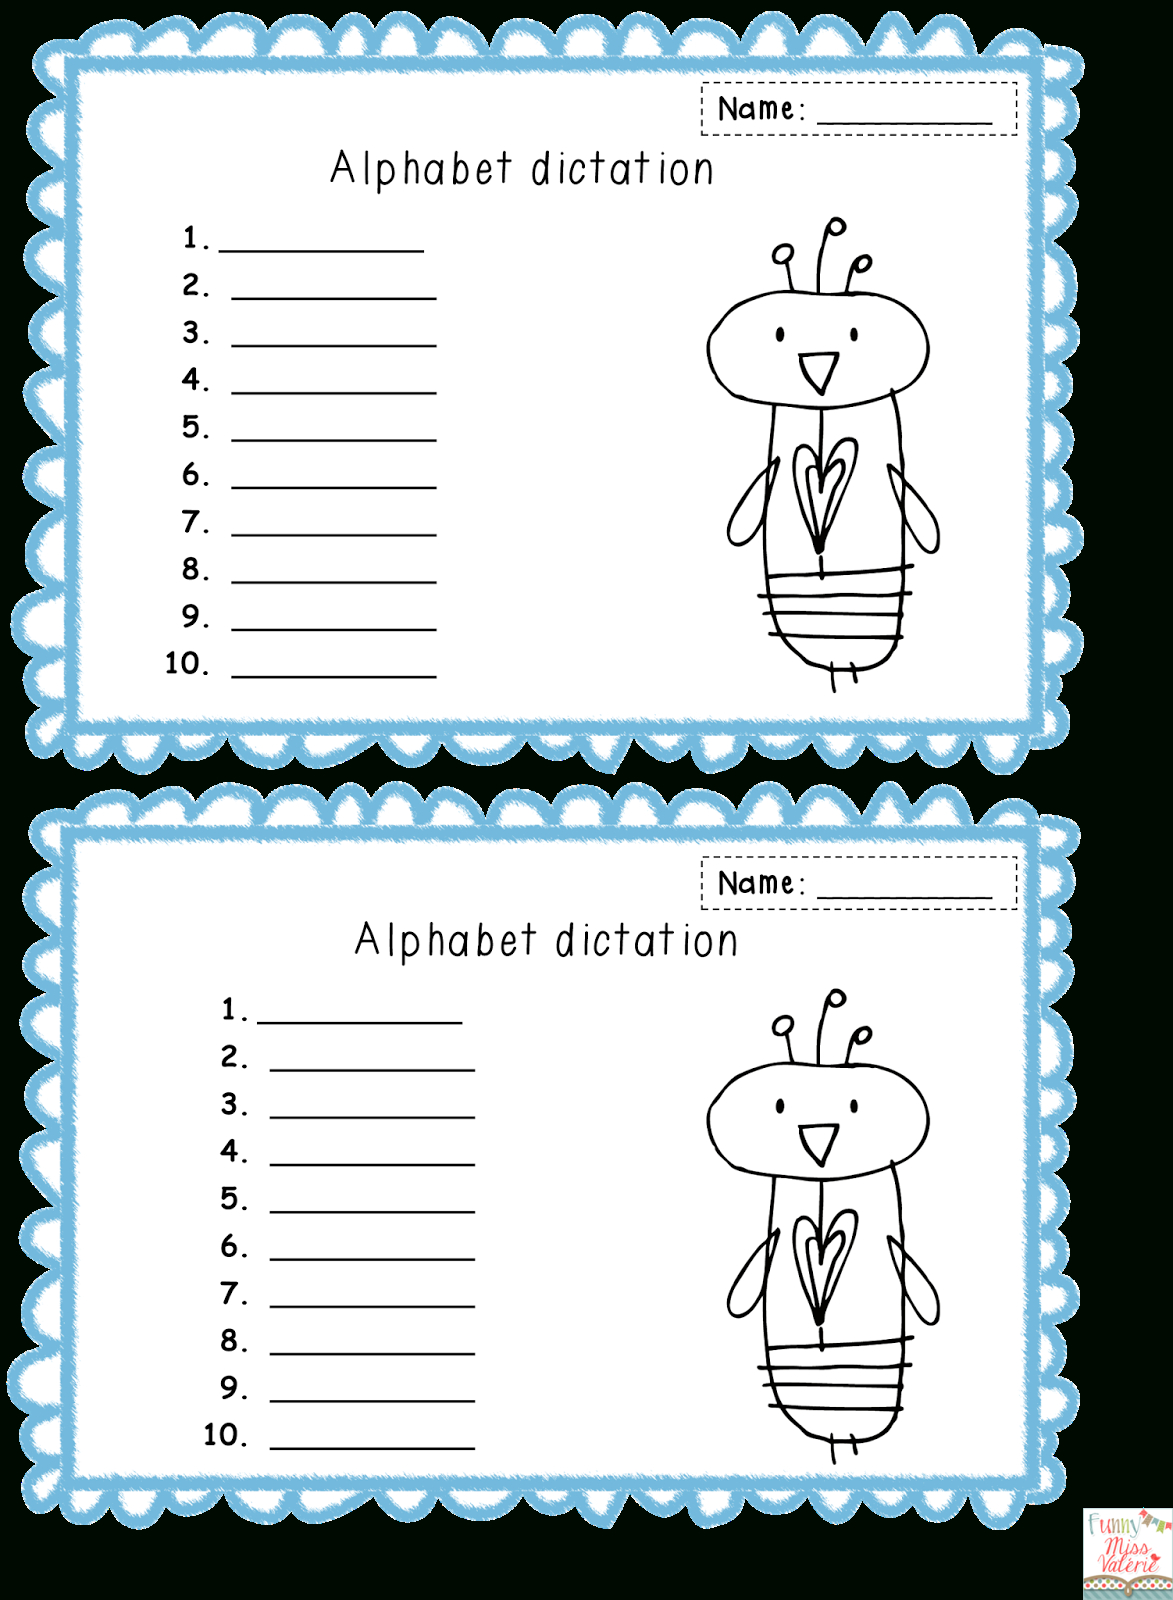 Funny Miss Val? Rie: Alphabet - Clip Art Library for Alphabet Dictation Worksheets